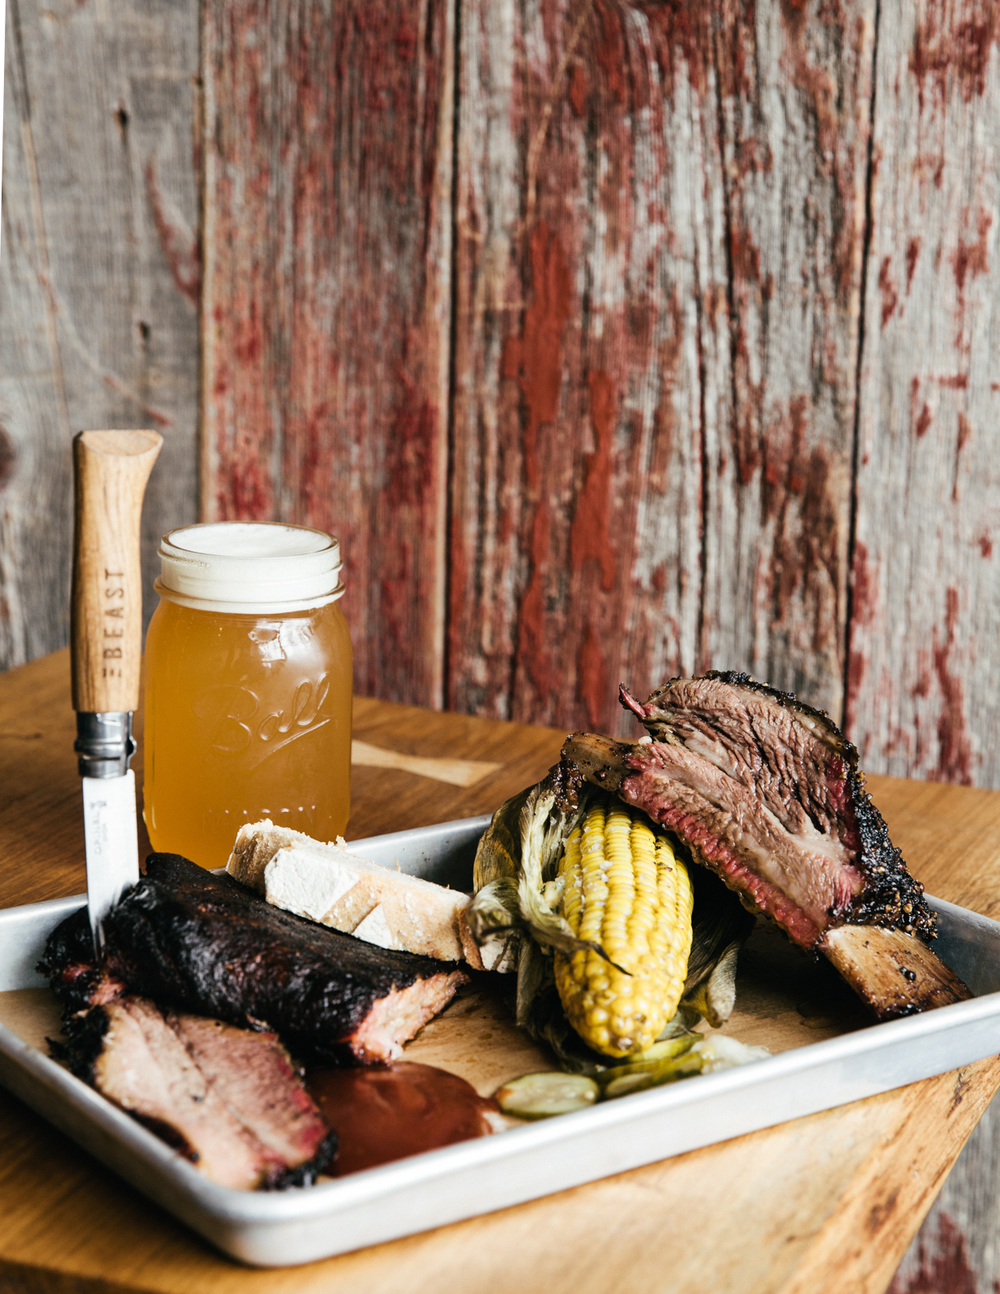 THE BEAST  27 Rue Meslay, 75003   INSIDER TIP  | If  Paris  knows a thing or two about barbecue today it's entirely thanks to  T he Beast, who brought the best of Texas style brisket, ribs and comforting sides to the city. Be sure to order the  @deckdonohue  beer on tap, a brew exclusive to The Beast!    PHOTO TIP  | It's all in the tray. Fill your platter to the brim and consider sides that add depth and color to the photo (like corn on the cob instead of beans). Slip in their branded Opinel knife to convey the idea that this is a spot where you dig in.